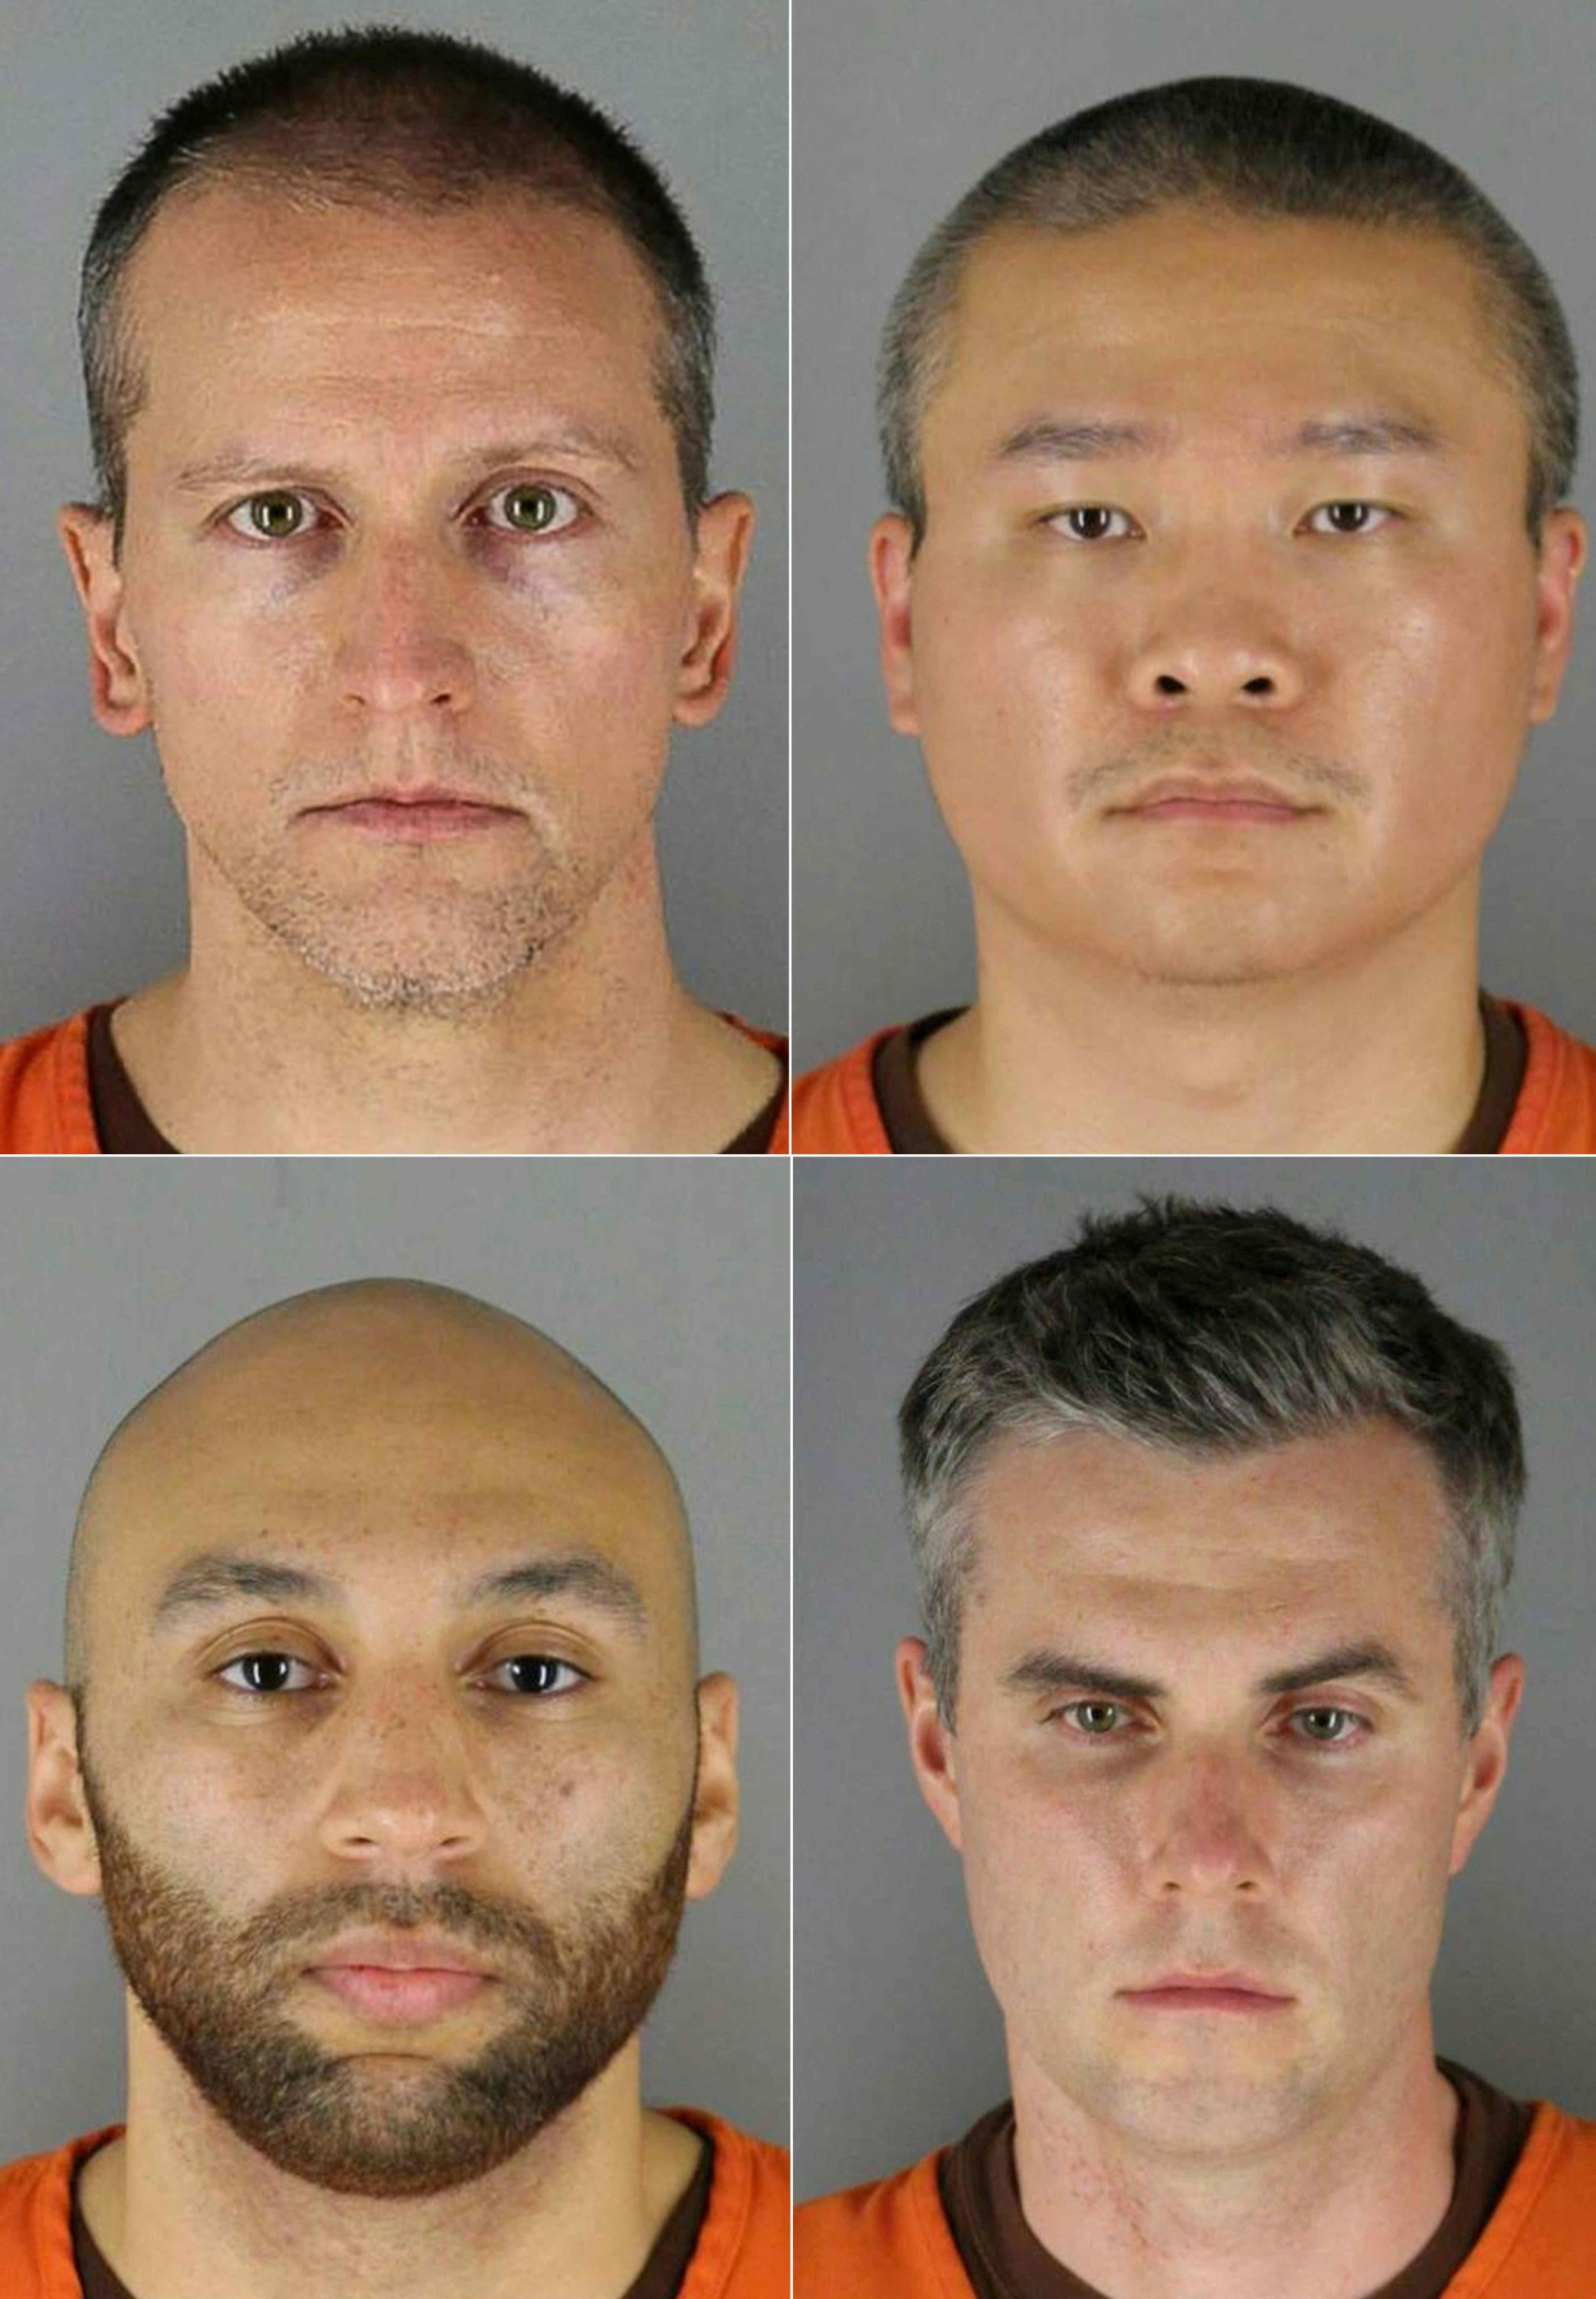 This combination of booking photos provided by the Hennepin County Jail created on June 03, 2020 shows (L-R, top to bottom) former police officers Derek Chauvin, Tou Thao, J. Alexander Kueng and Thomas Kiernan Lane. Minnesota, U.S., May 7, 2021. (Hennepin County Jail handout / AFP Photo)